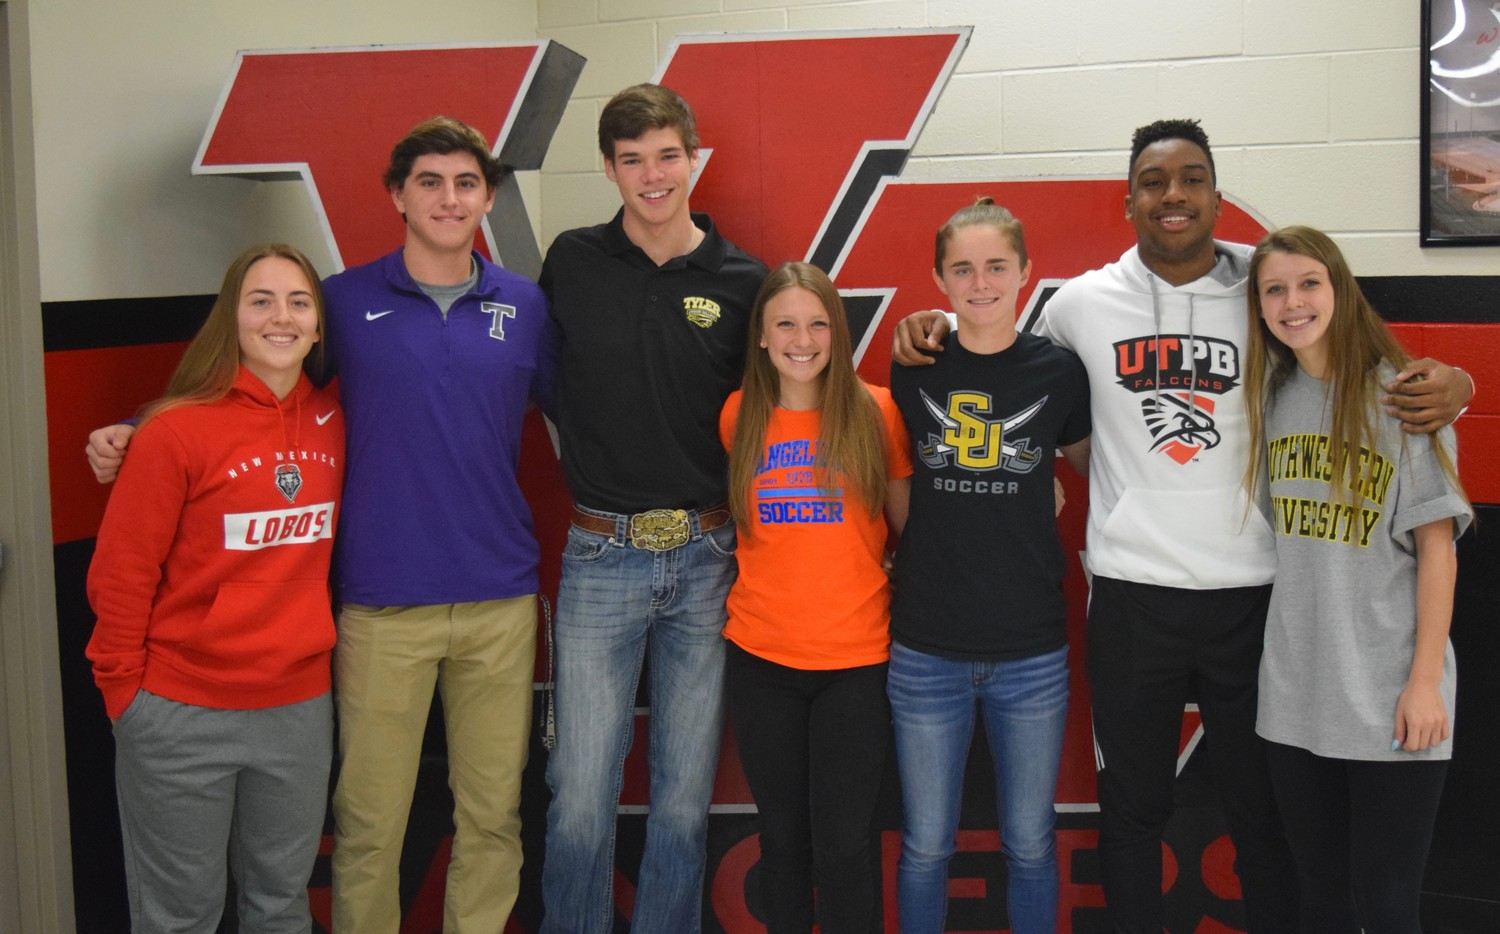 Seven Vista Ridge athletes signed on Wednesday morning (from left): Daryn Haslam (New Mexico), Gannon Azios (Tarleton State University), Dathon McGrath (Tyler Junior College), Olivia Porter (Angelina Junior College), Jamil Pittman (UTPB) and Hallie Rutherford (Southwestern), Hanna Sanderson (Southwestern).